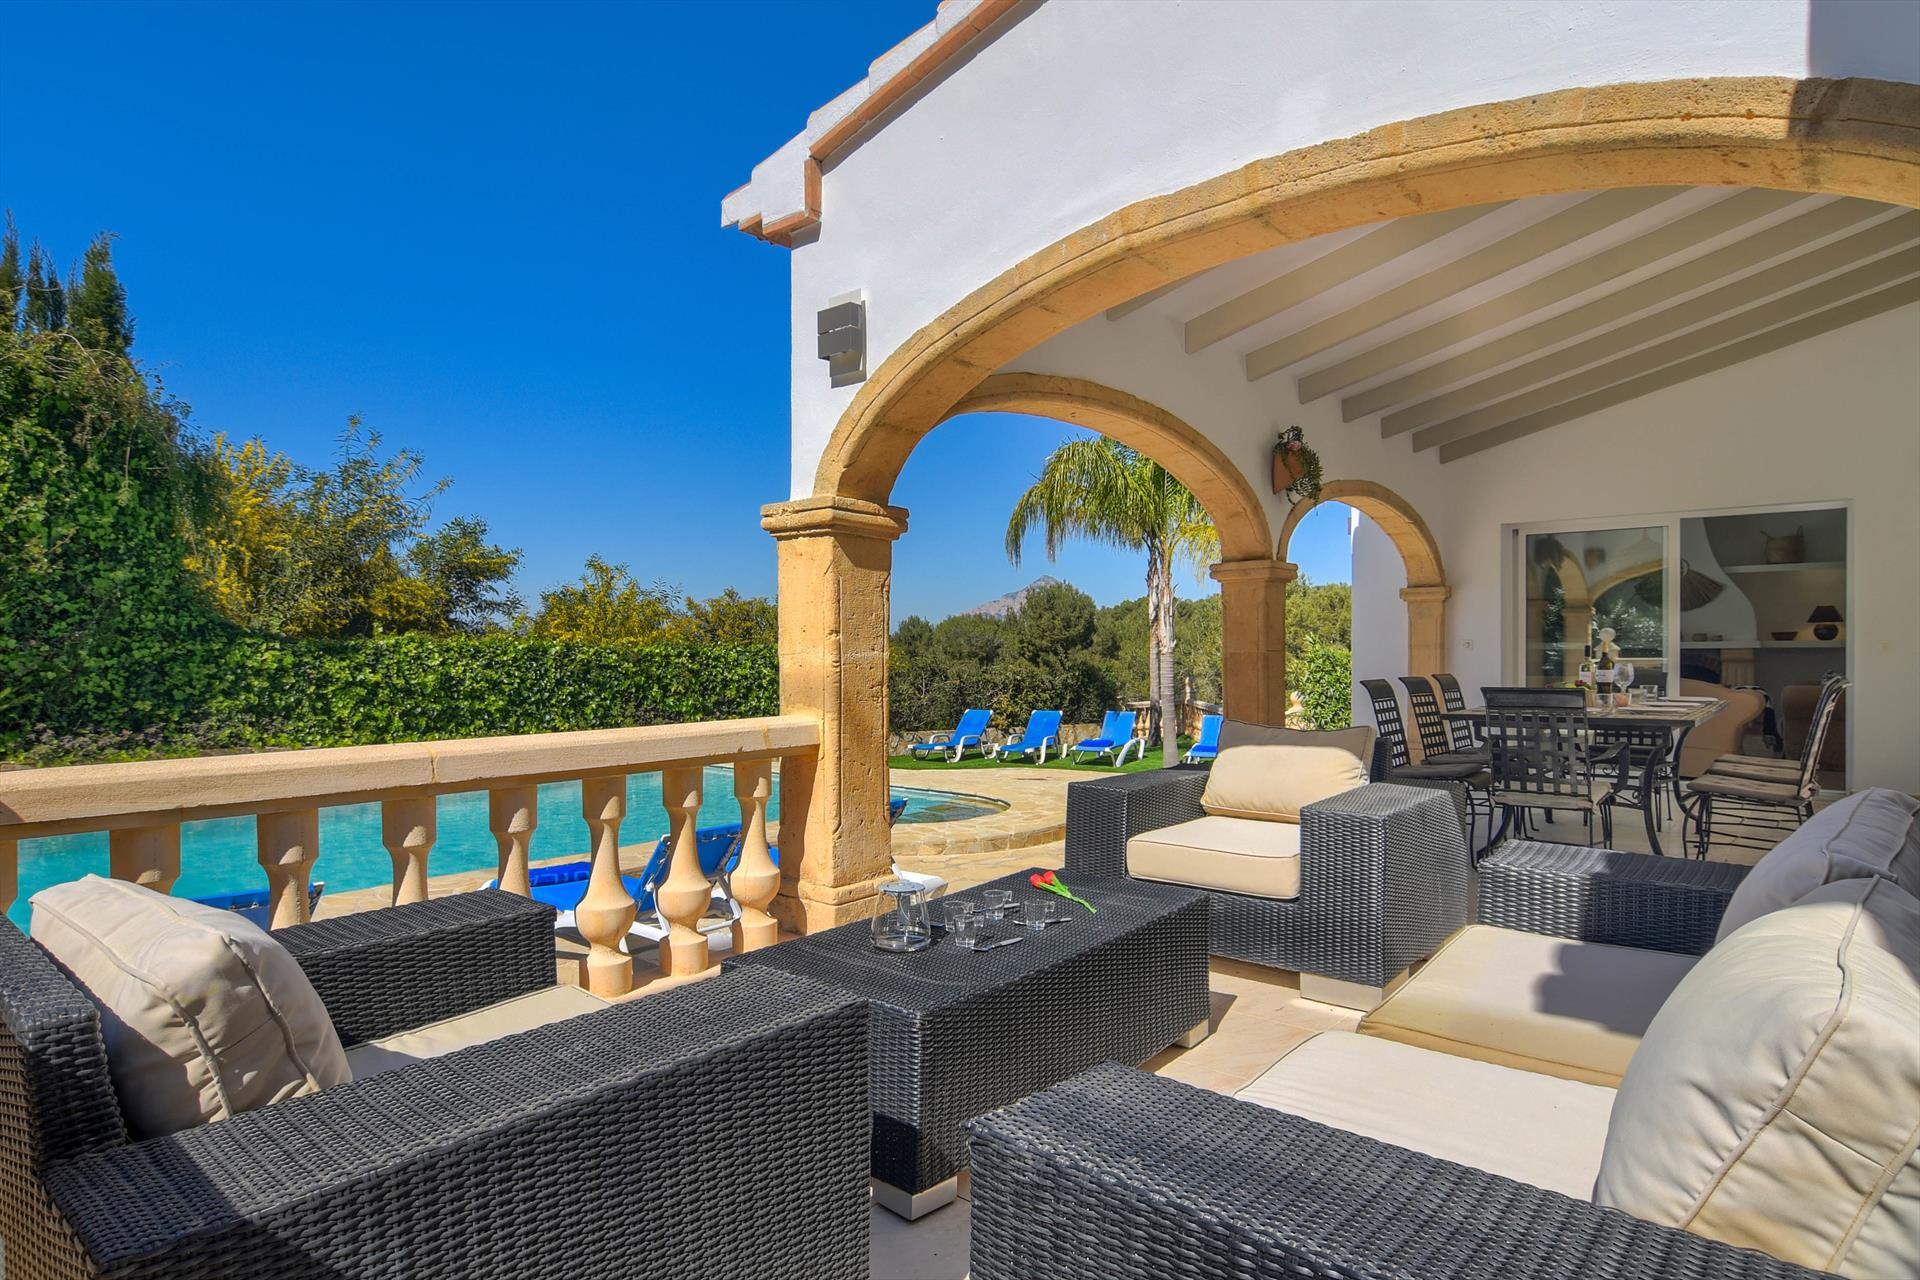 Stella Maris 6,Beautiful and classic villa in Javea, on the Costa Blanca, Spain  with private pool for 6 persons.....